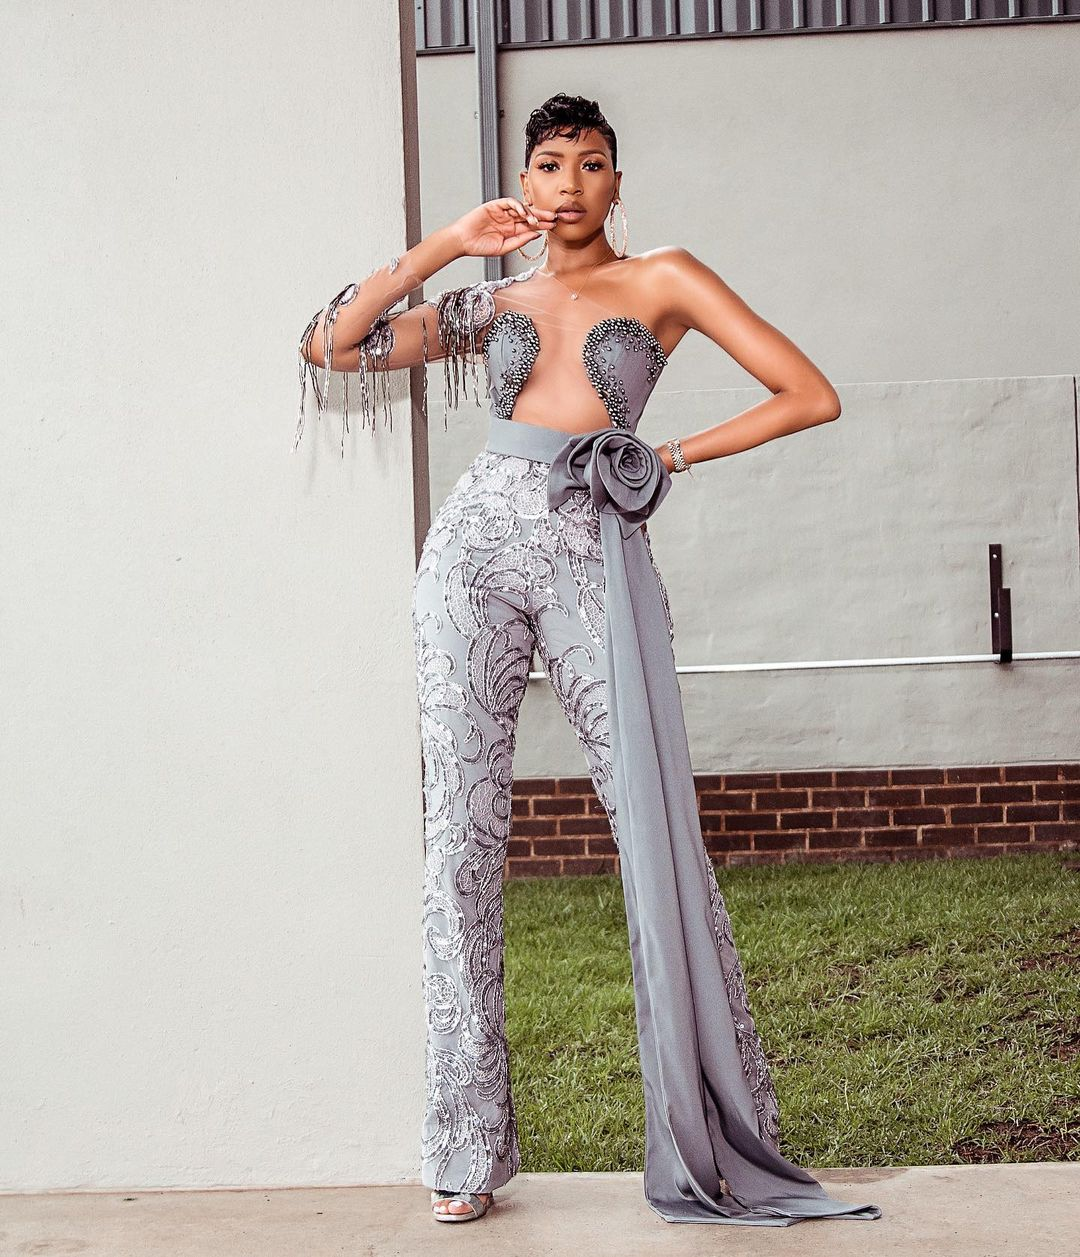 Blue Mbombo Sure Knows How To Rock A Jumpsuit